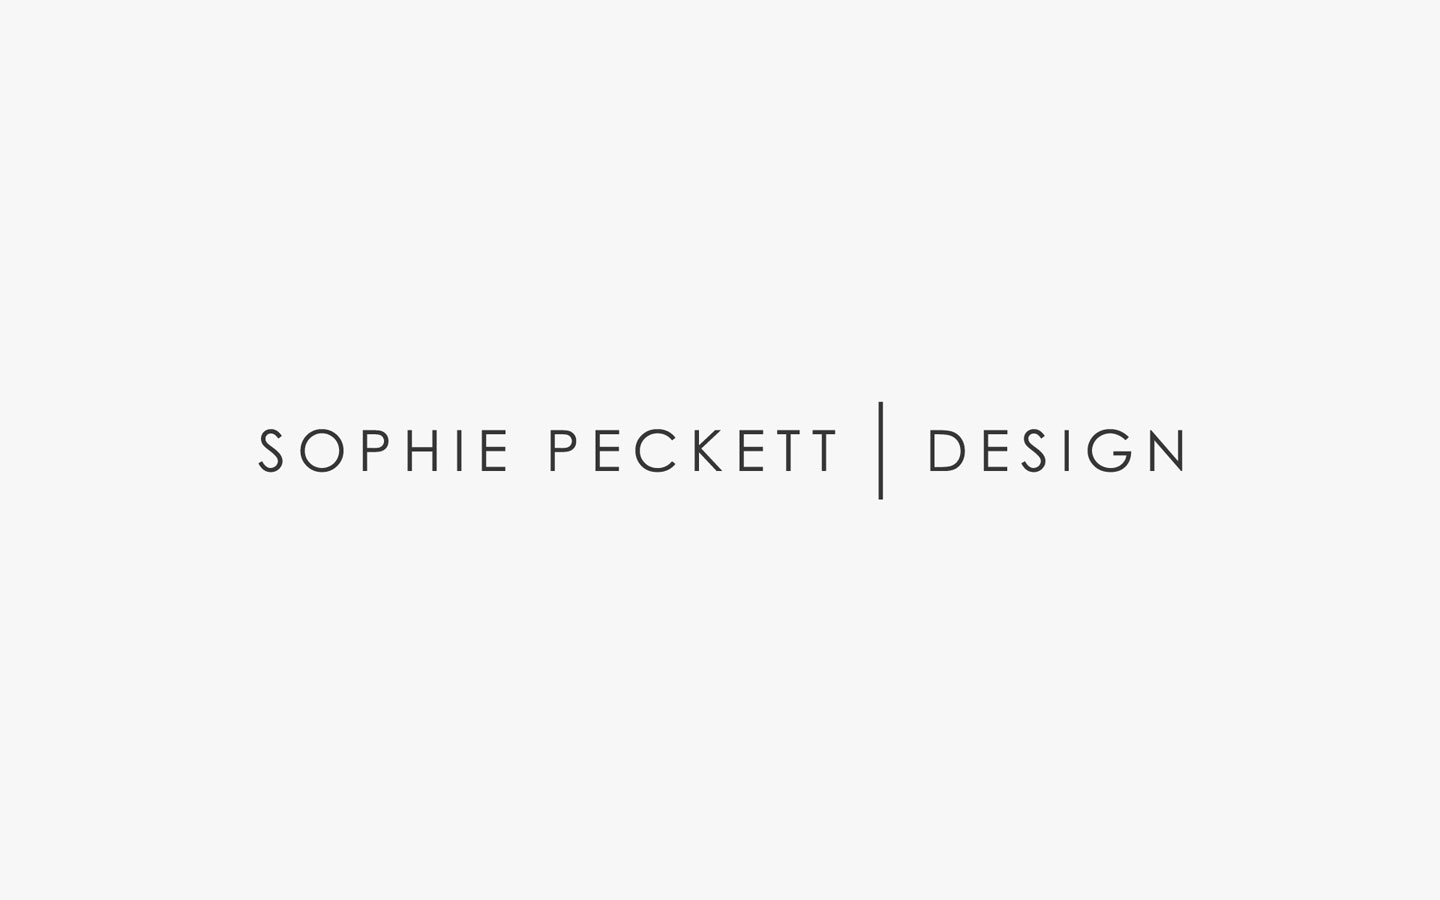 Sophie Peckett Logo Design in Mono